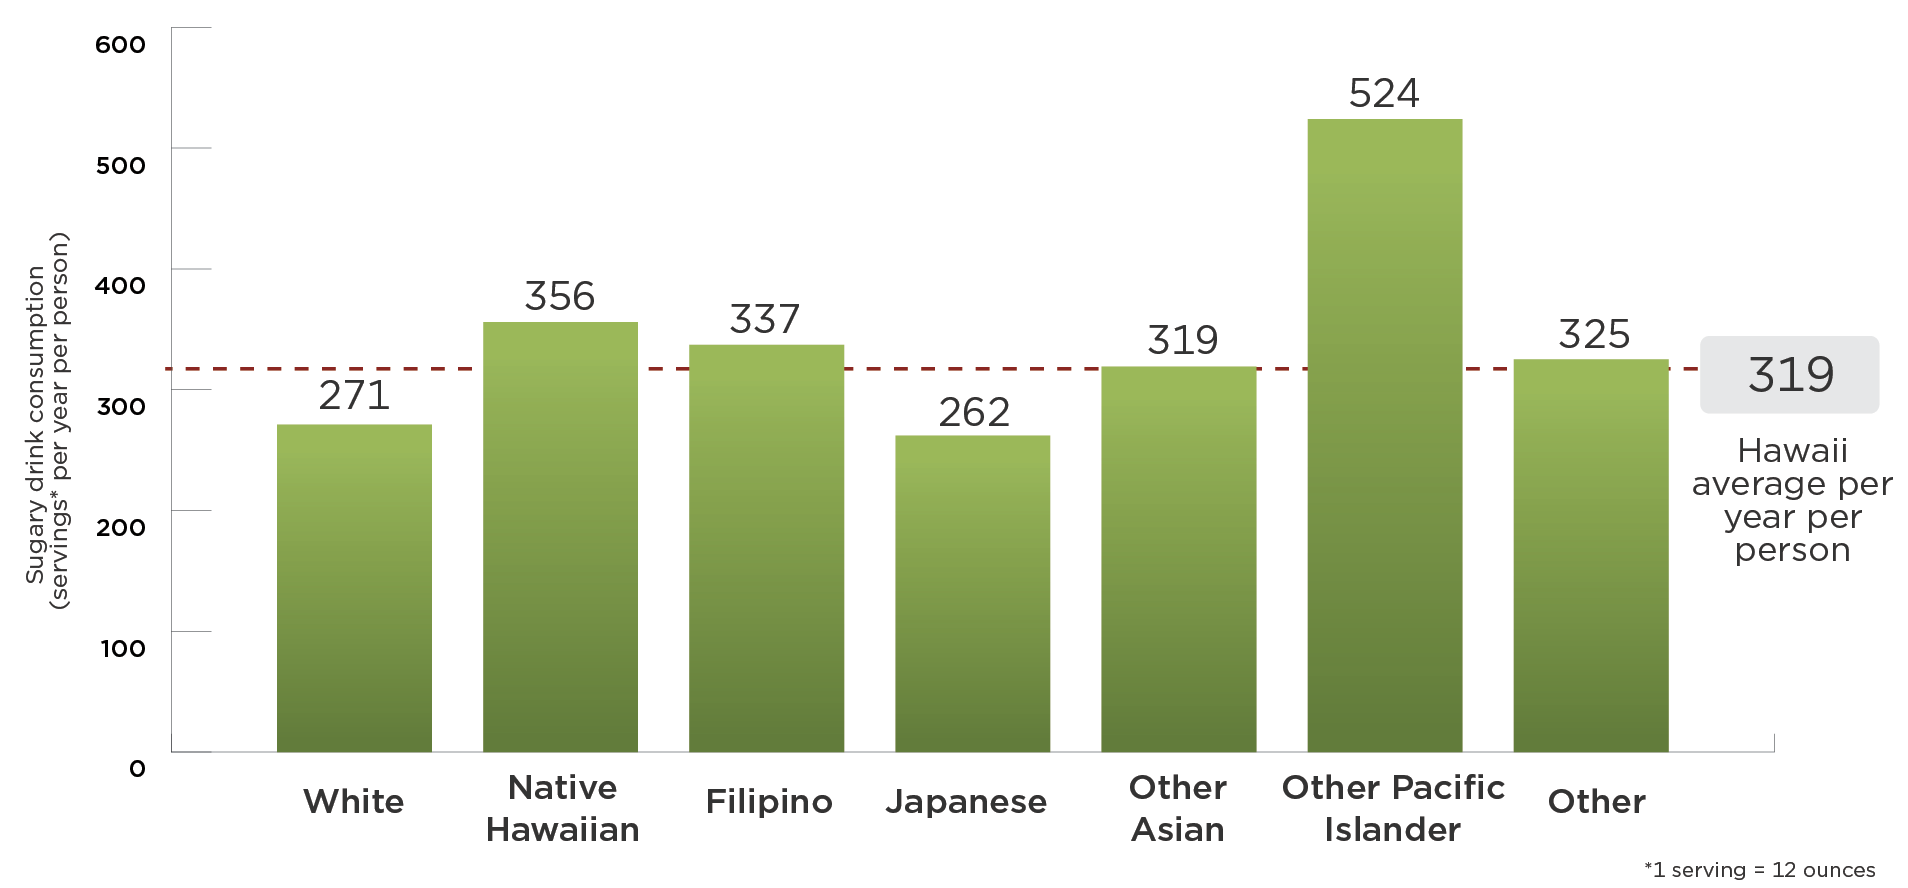 White residents drink 271 12 ounce servings of sugary drinks per year per person; Native Hawaiian residents drink 356 12 ounce servings of sugary drinks per year per person; Filipino residents drink 337 12 ounce servings of sugary drinks per year per person; Japanese residents drink 262 12 ounce servings of sugary drinks per year per person; Other Asian residents drink 319 12 ounce servings of sugary drinks per year per person; Other Pacific Islander residents drink 524 12 ounce servings of sugary drinks per year per person; Residents of Other races drink 325 12 ounce servings of sugary drinks per year per person; The average resident drinks 319 12 ounce servings of sugary drinks per year per person